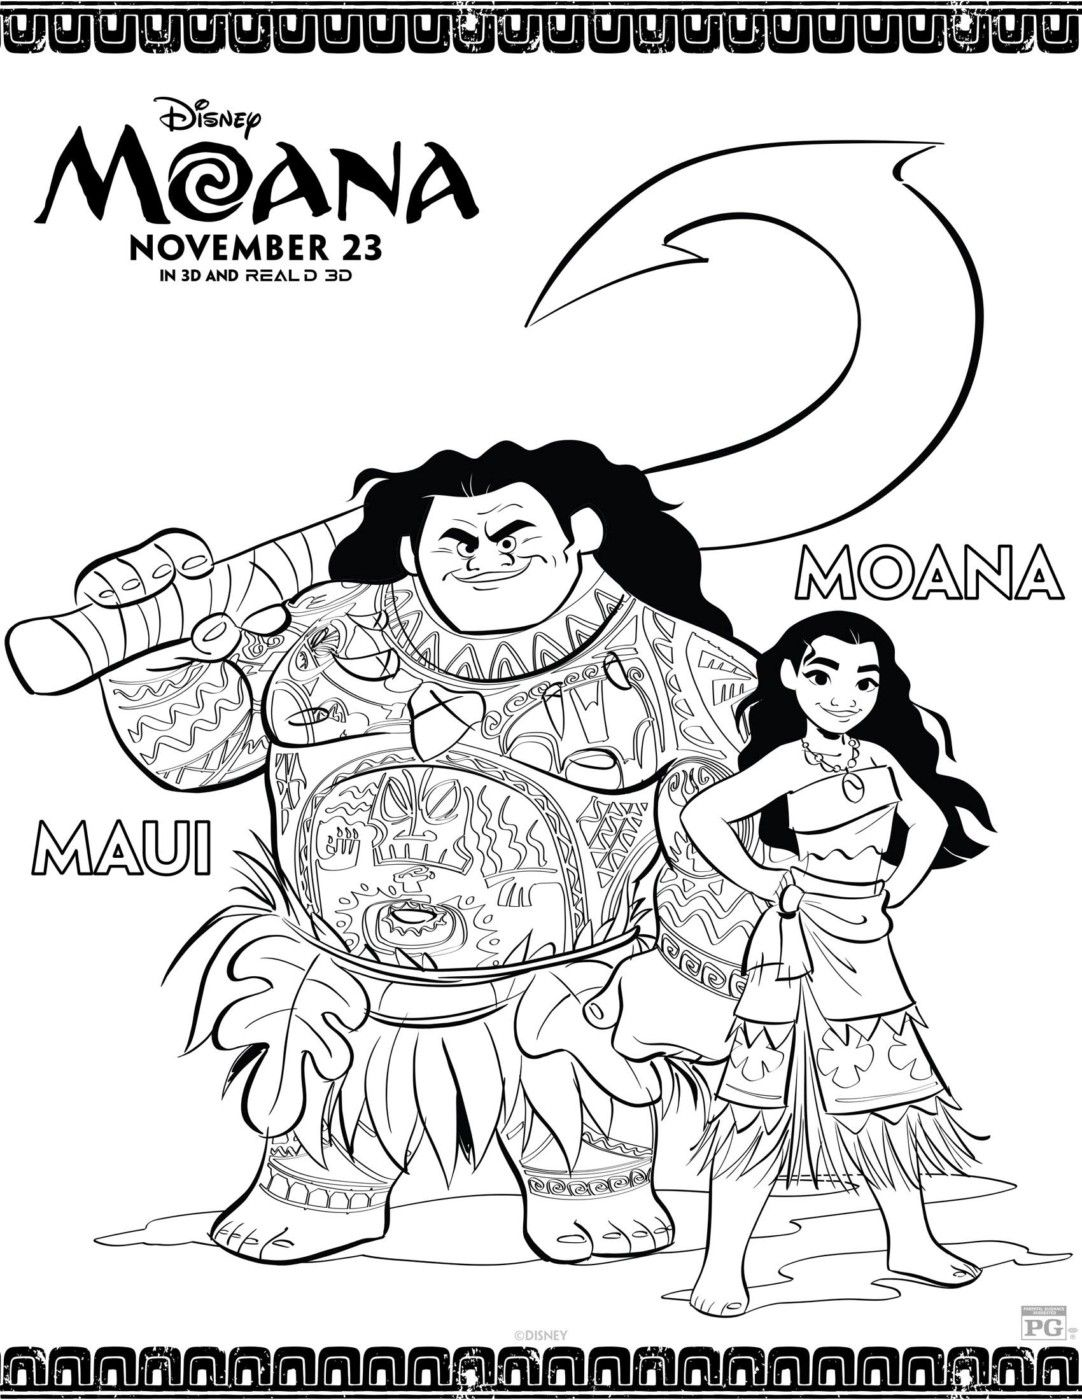 image regarding Moana Printable Coloring Pages called Totally free Coloring Web pages, Moana Coloring Web pages, Moana Printables